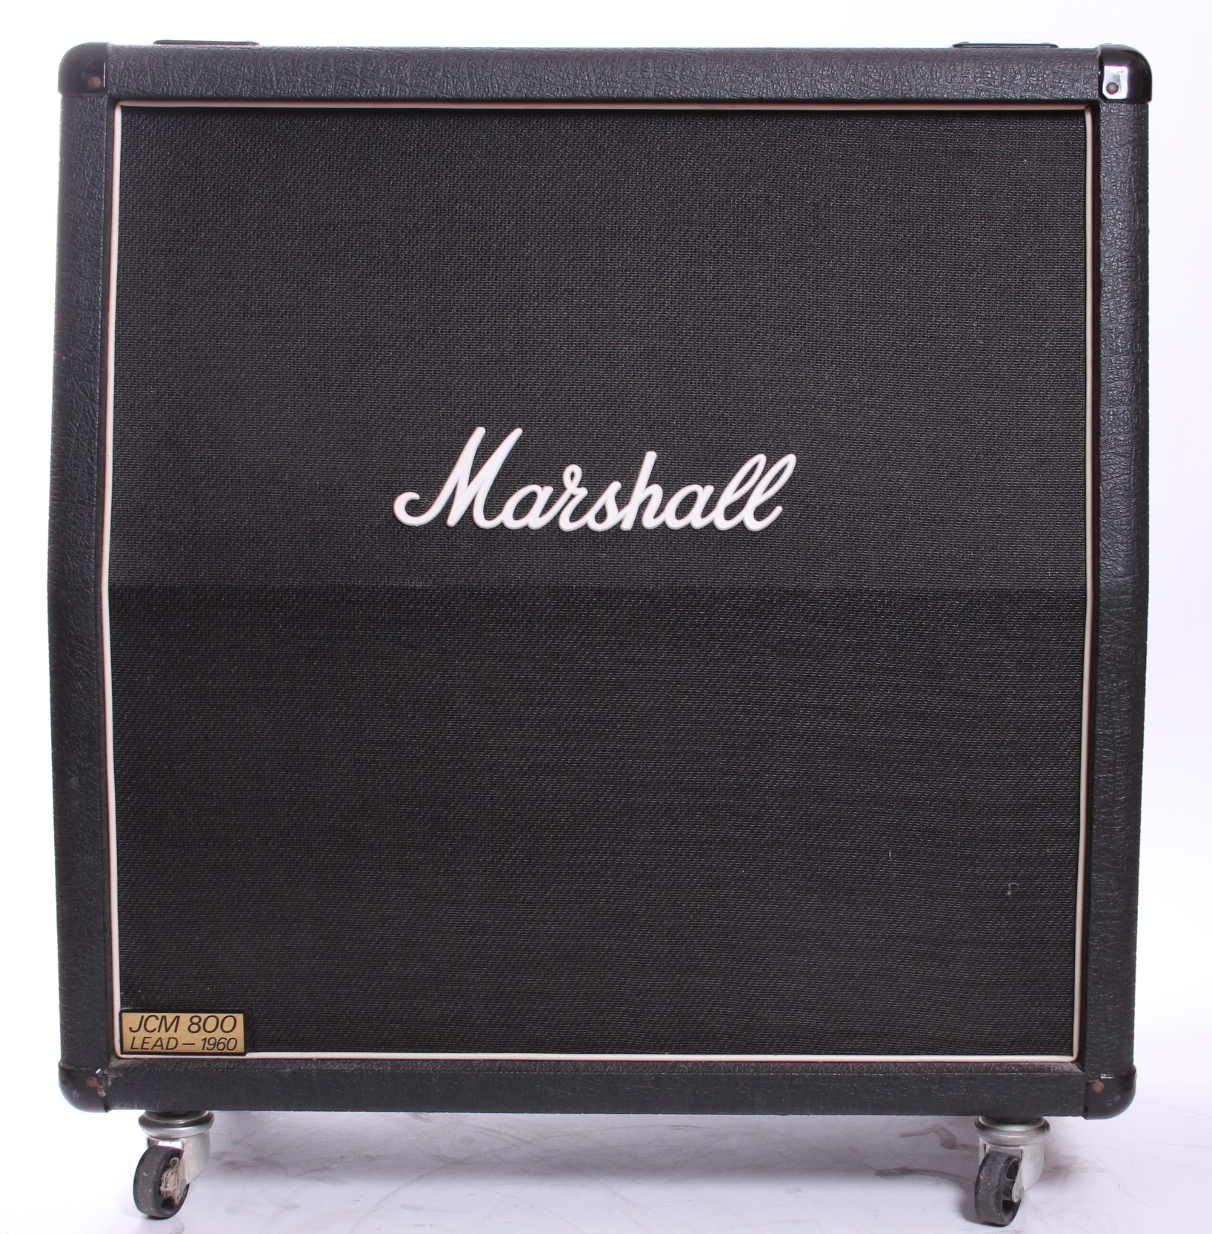 Marshall cabinet serial numbers